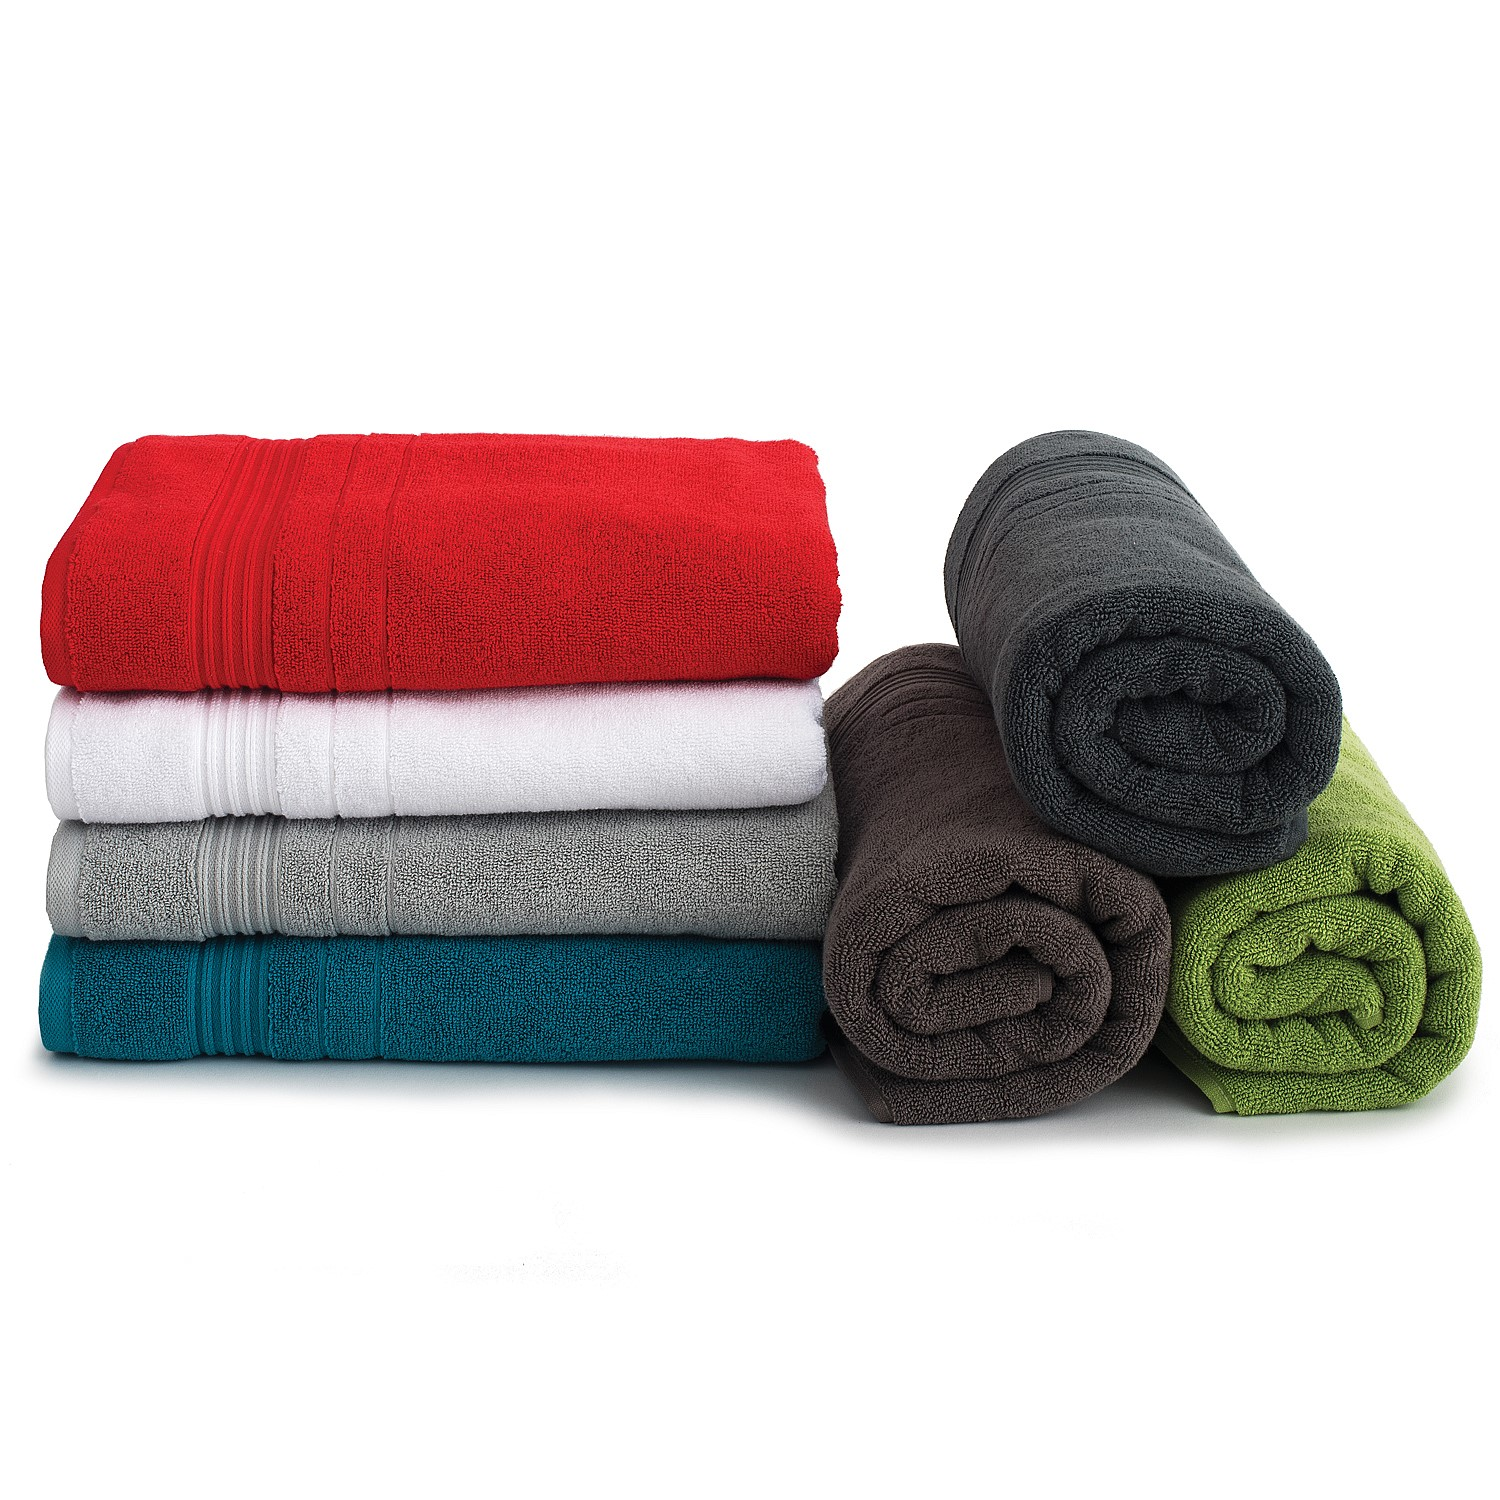 Towels Hamami Turkish Bath Towels 600gsm